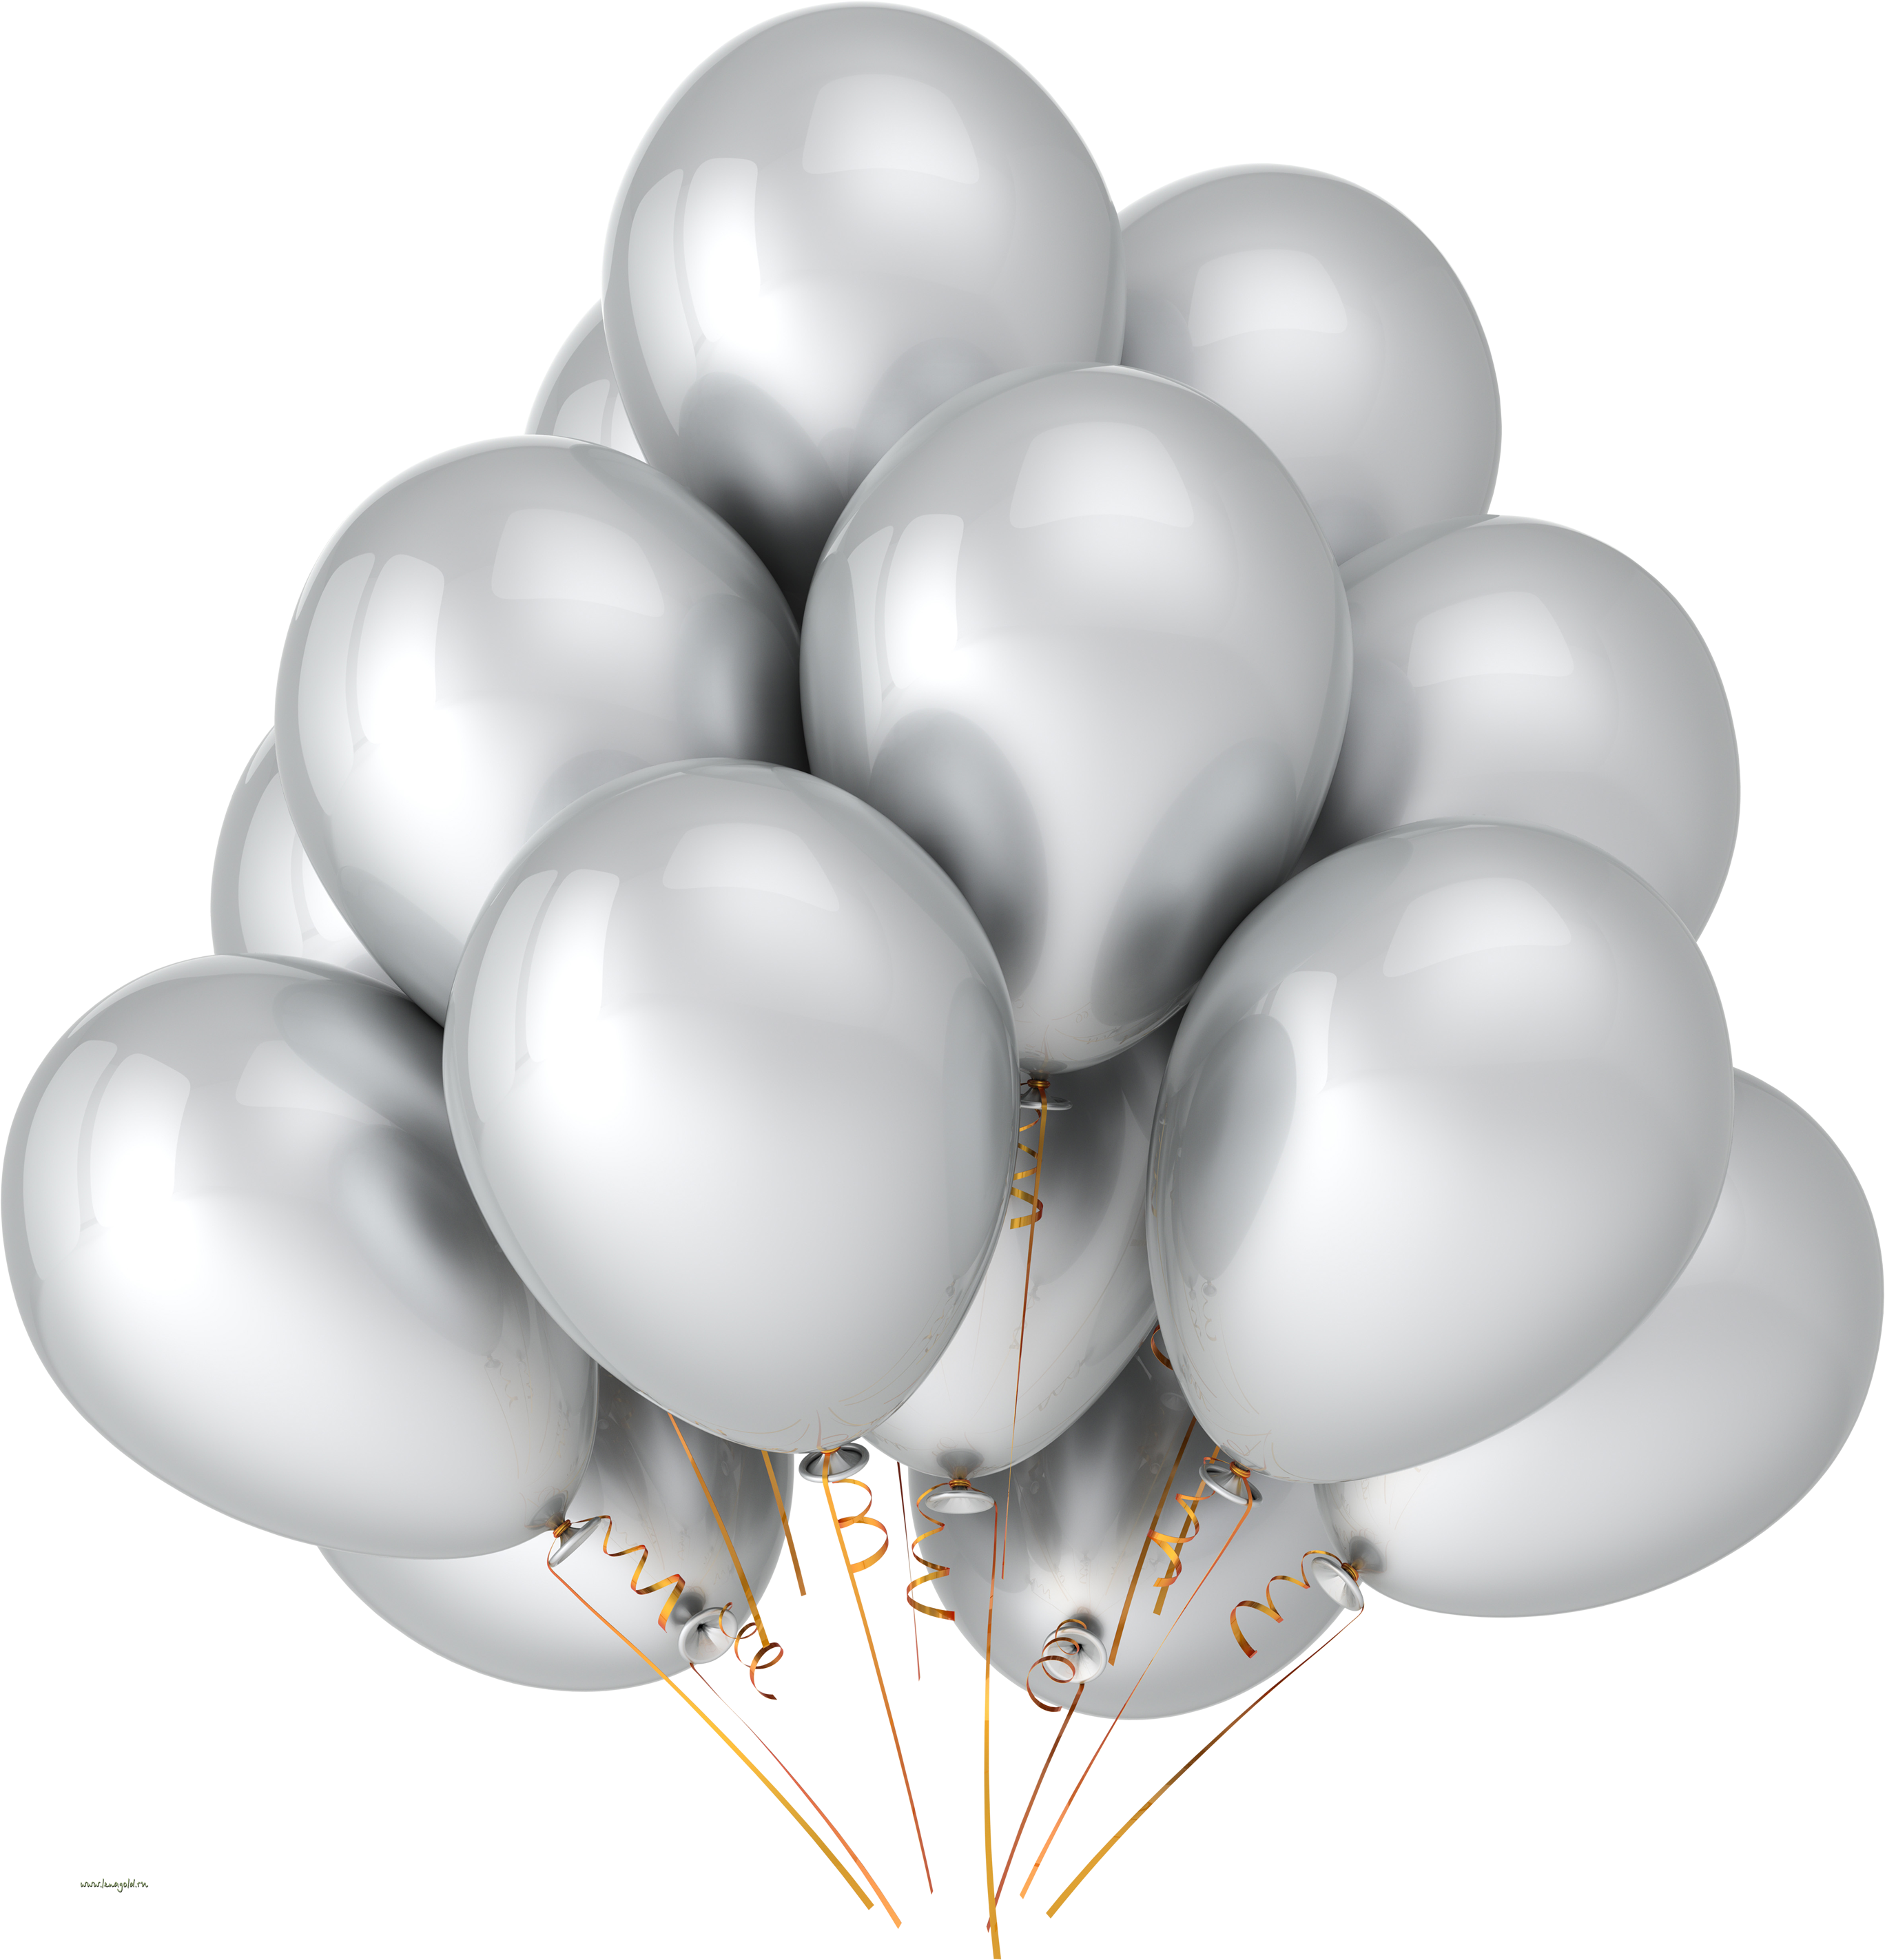 Yellow balloons PNG image, free download, balloons